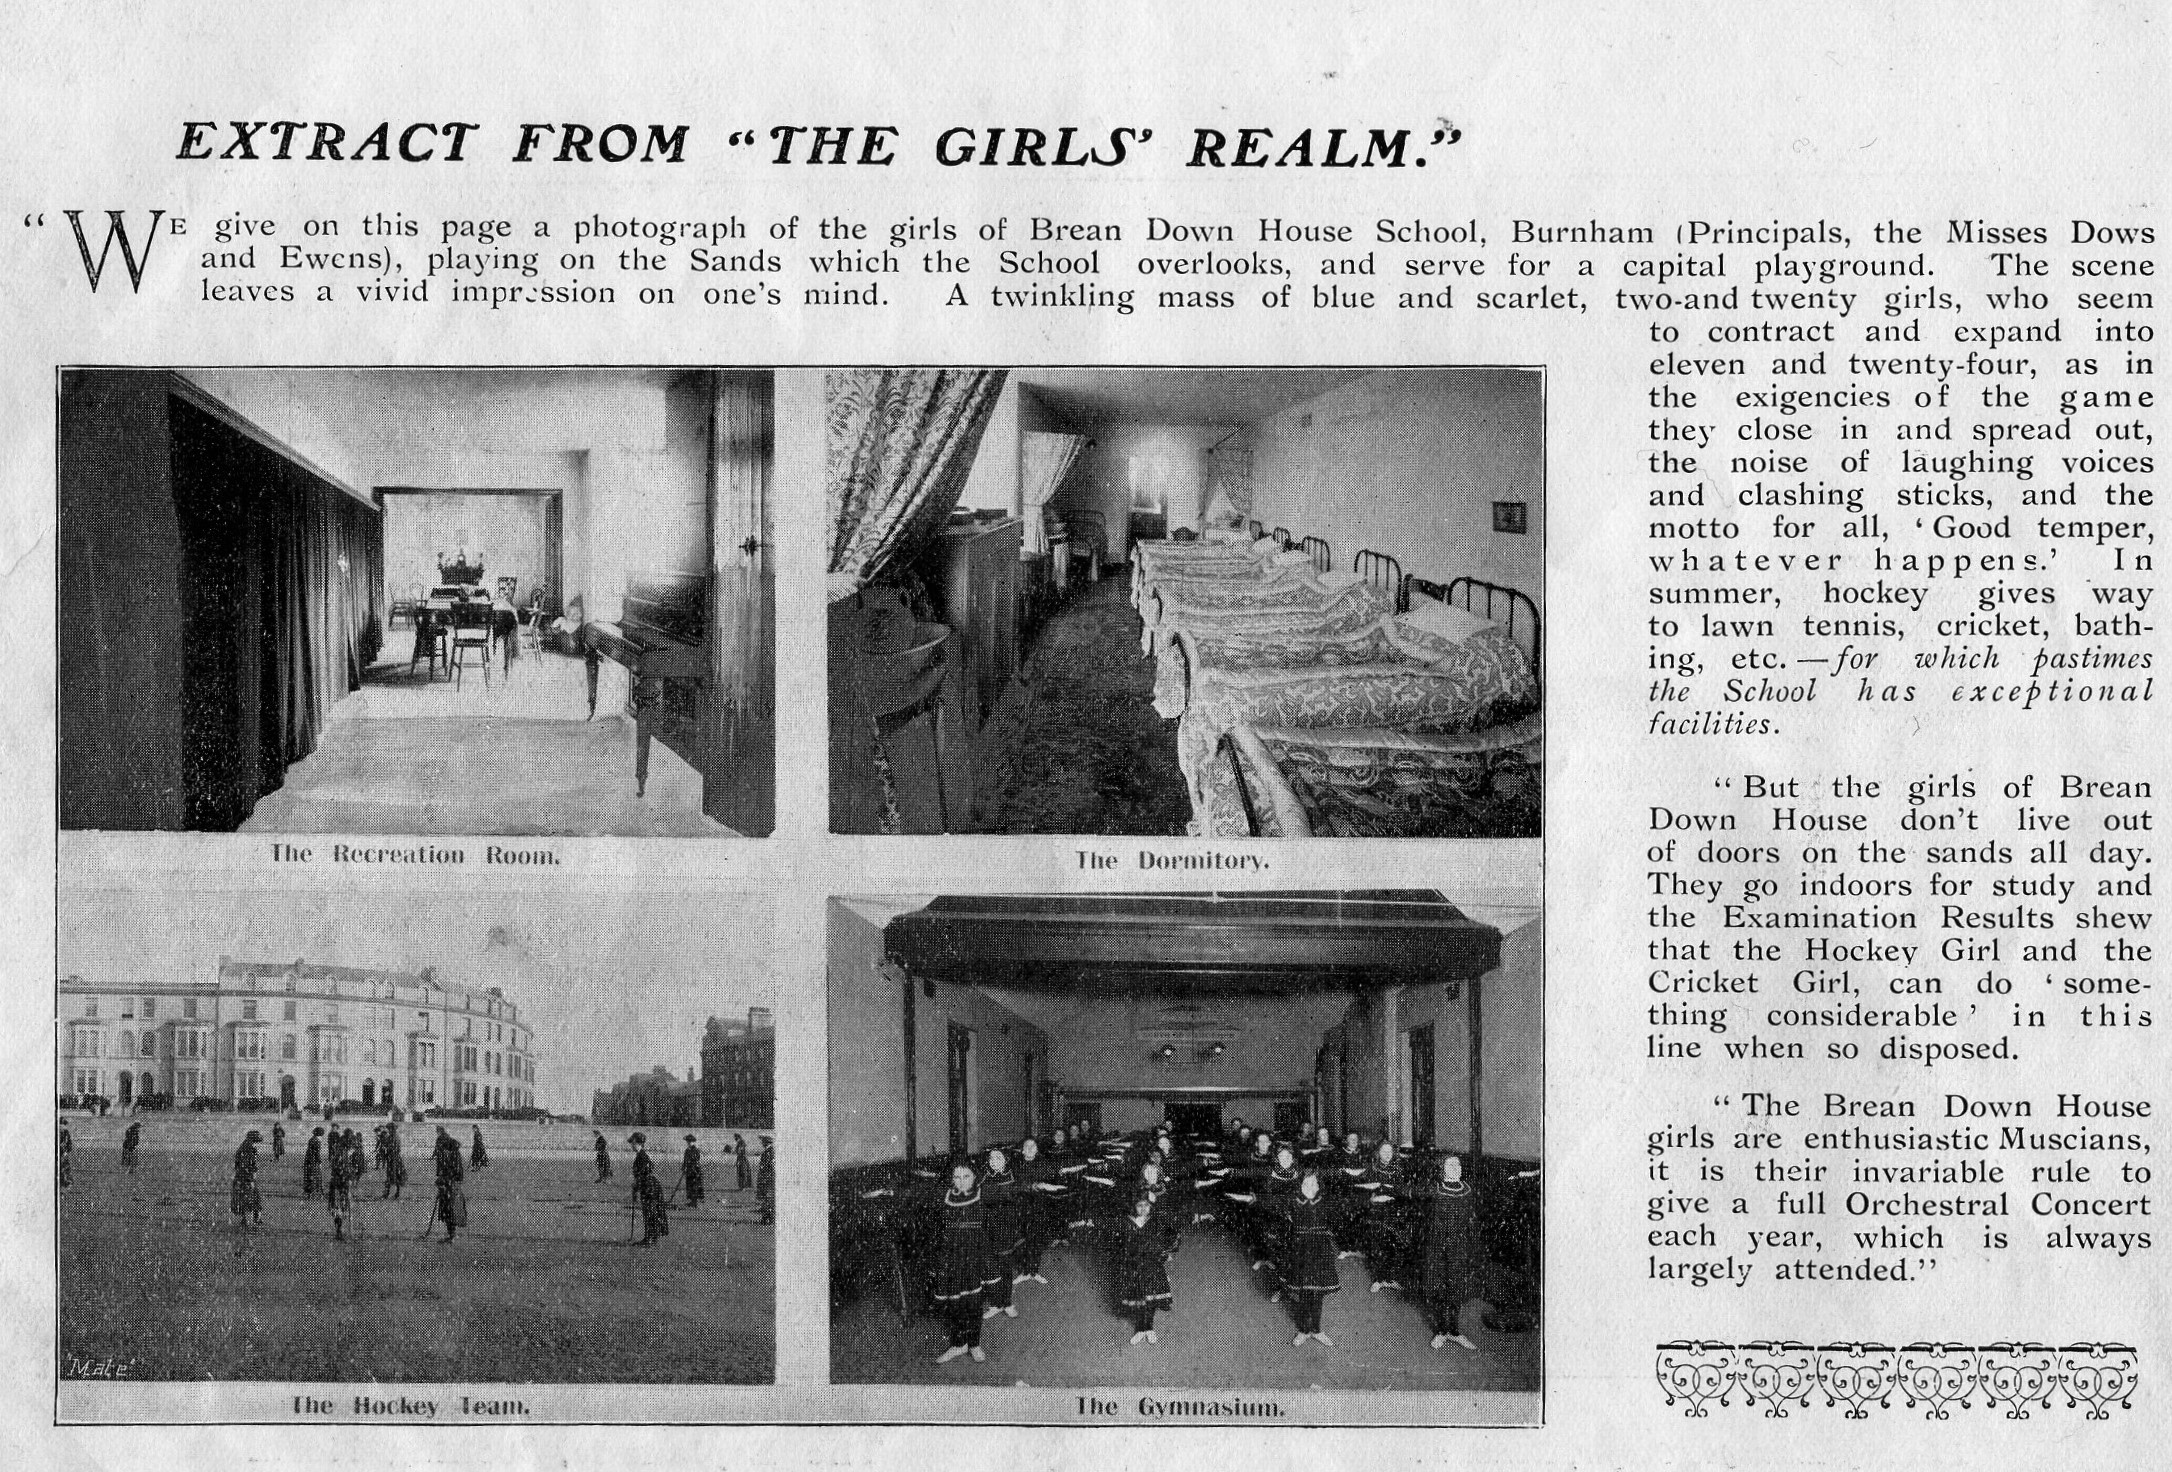 Brean down House School . This article was taken from the Mate's Illustrated Guide of Burham published in 1903. The Guide was owned by